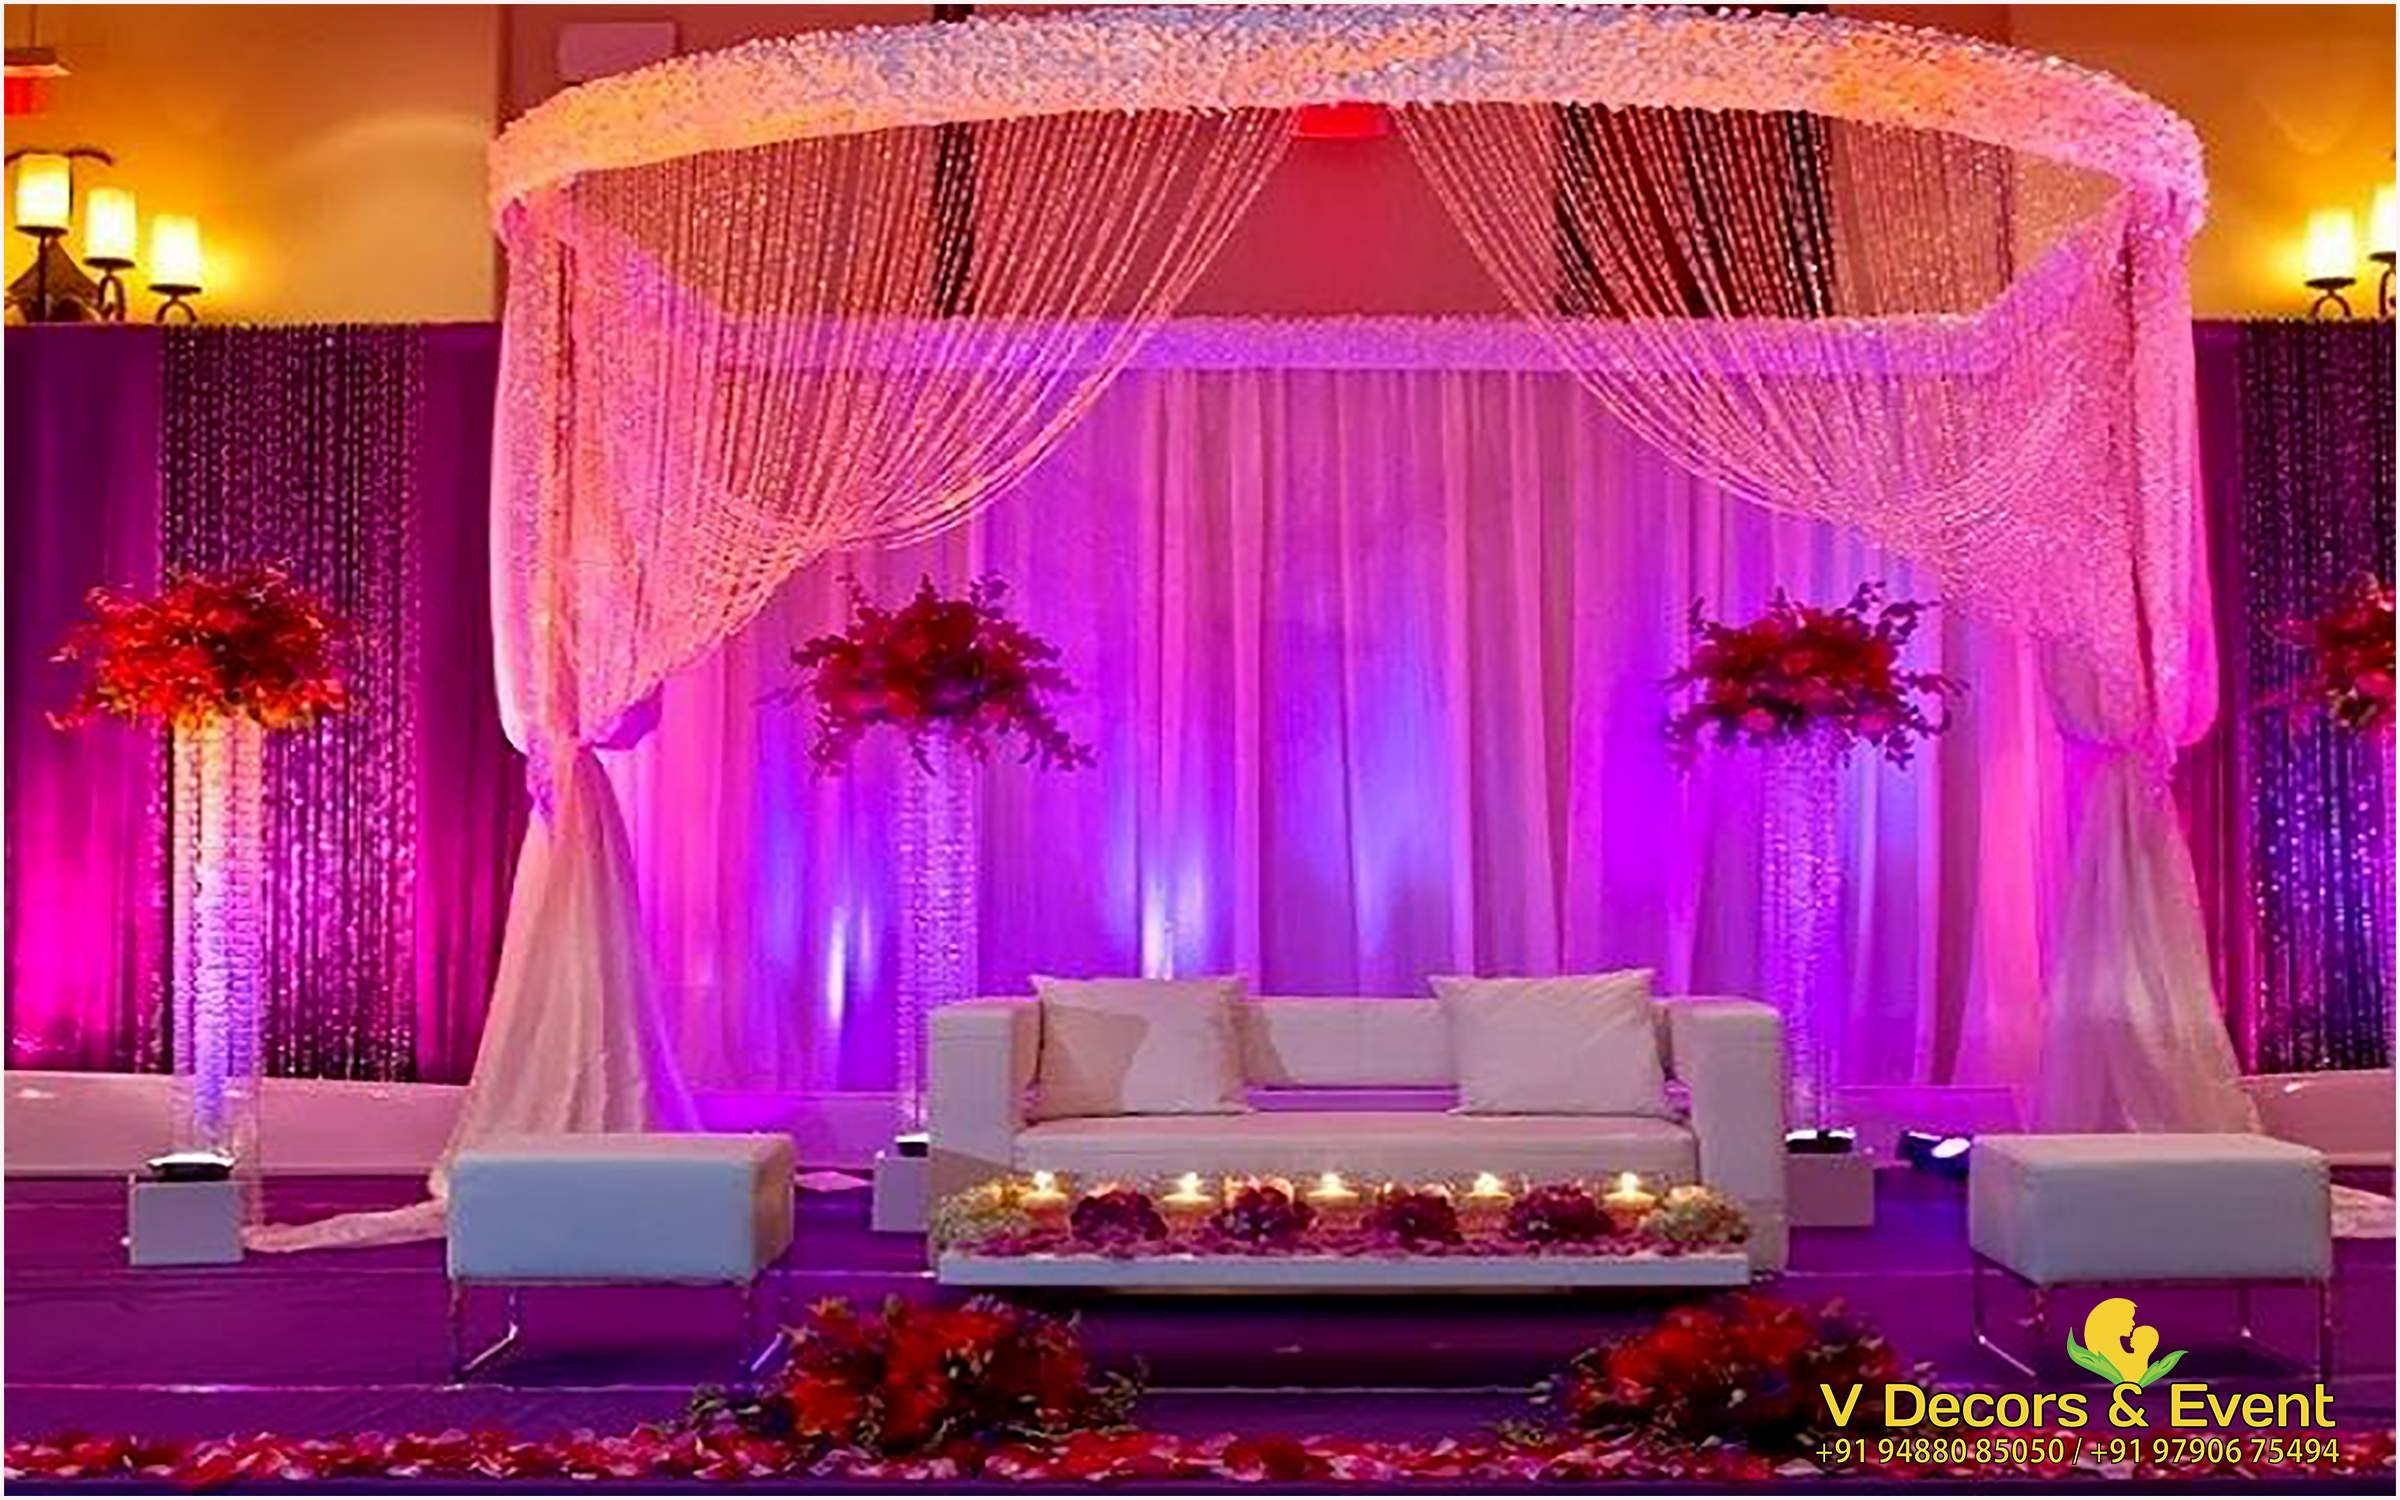 V Decors And Events Wedding Planners In Pondicherry Wedding Decorations In Pondicherry Wedding